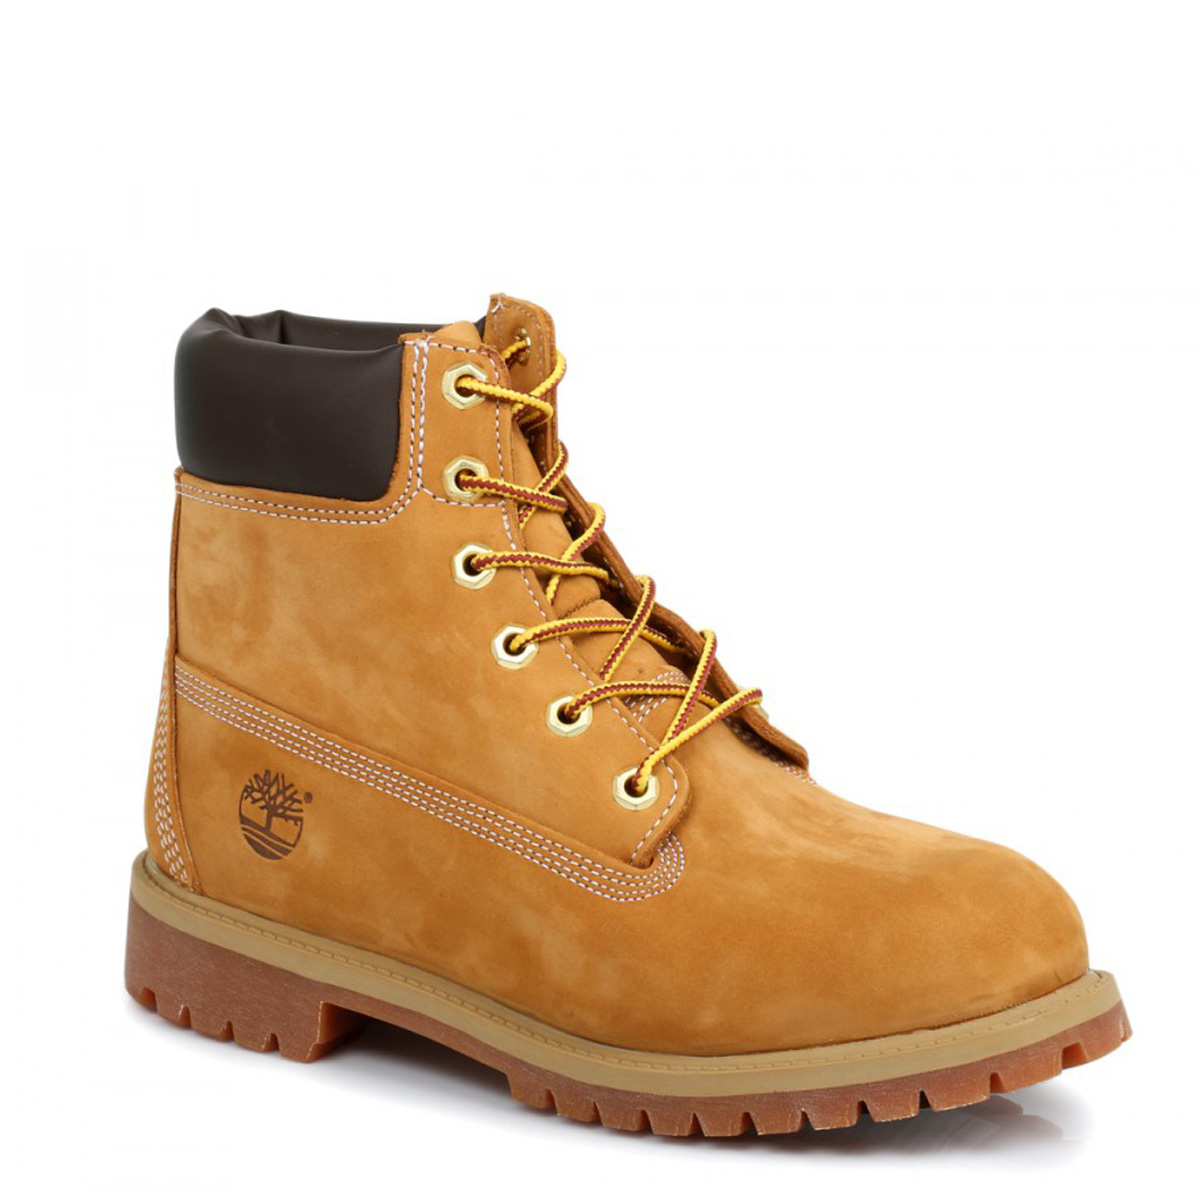 Luxury The Firm Said It Aspires To Achieve Food Sovereignty For The Nation Preceding Mohans Speech, Outdoor Wear Brand Timberland Discussed Its Program, Timberland X SFA, That Reintroduces Organic Cott